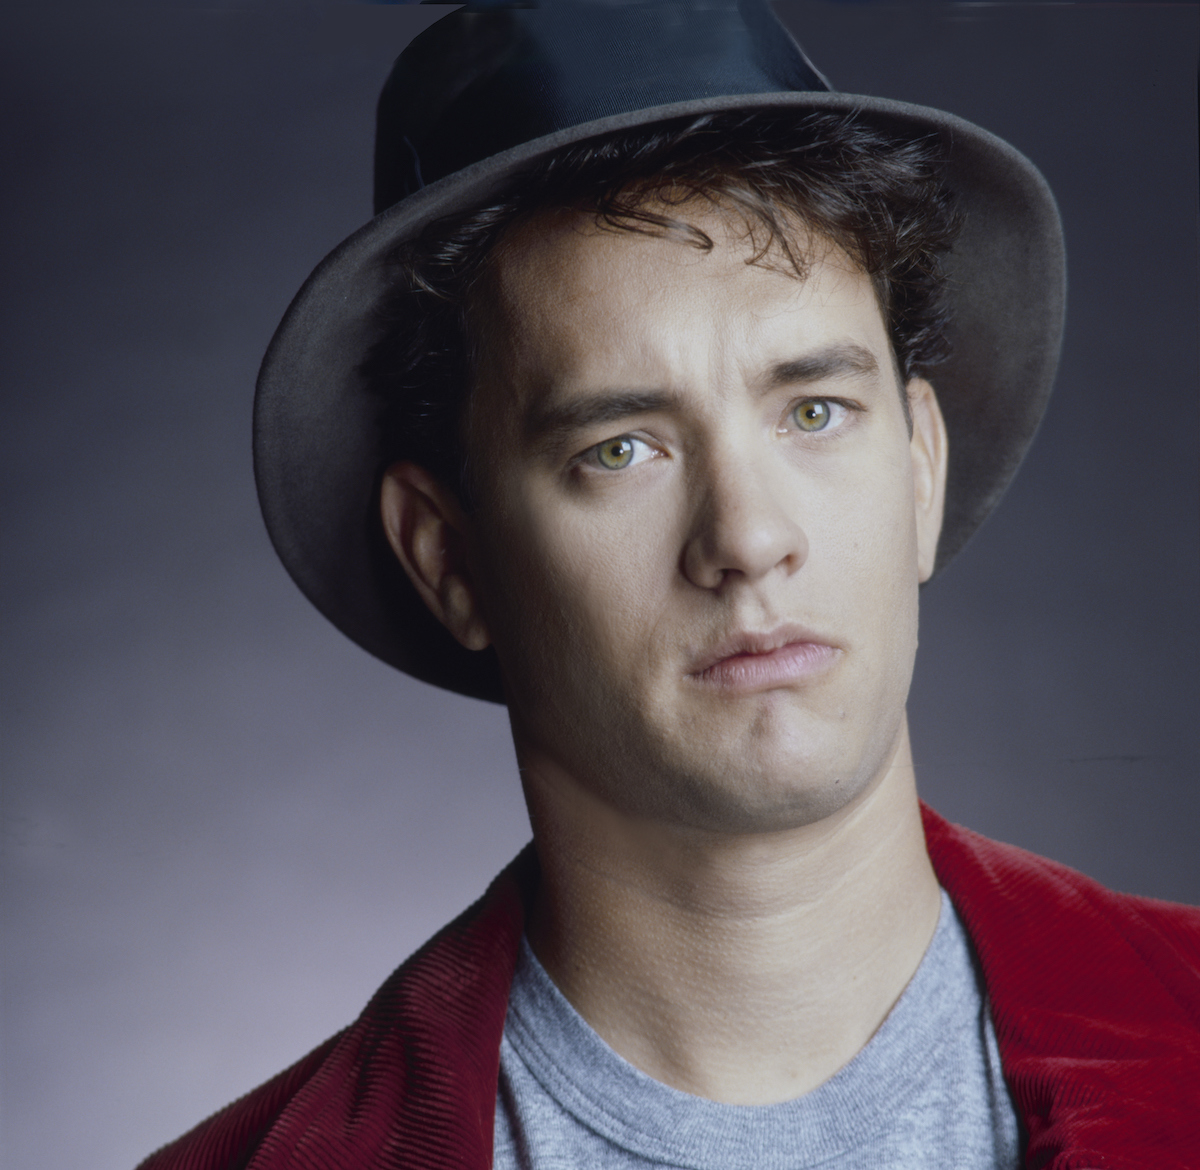 Tom Hanks wears a hot and poses in 1988